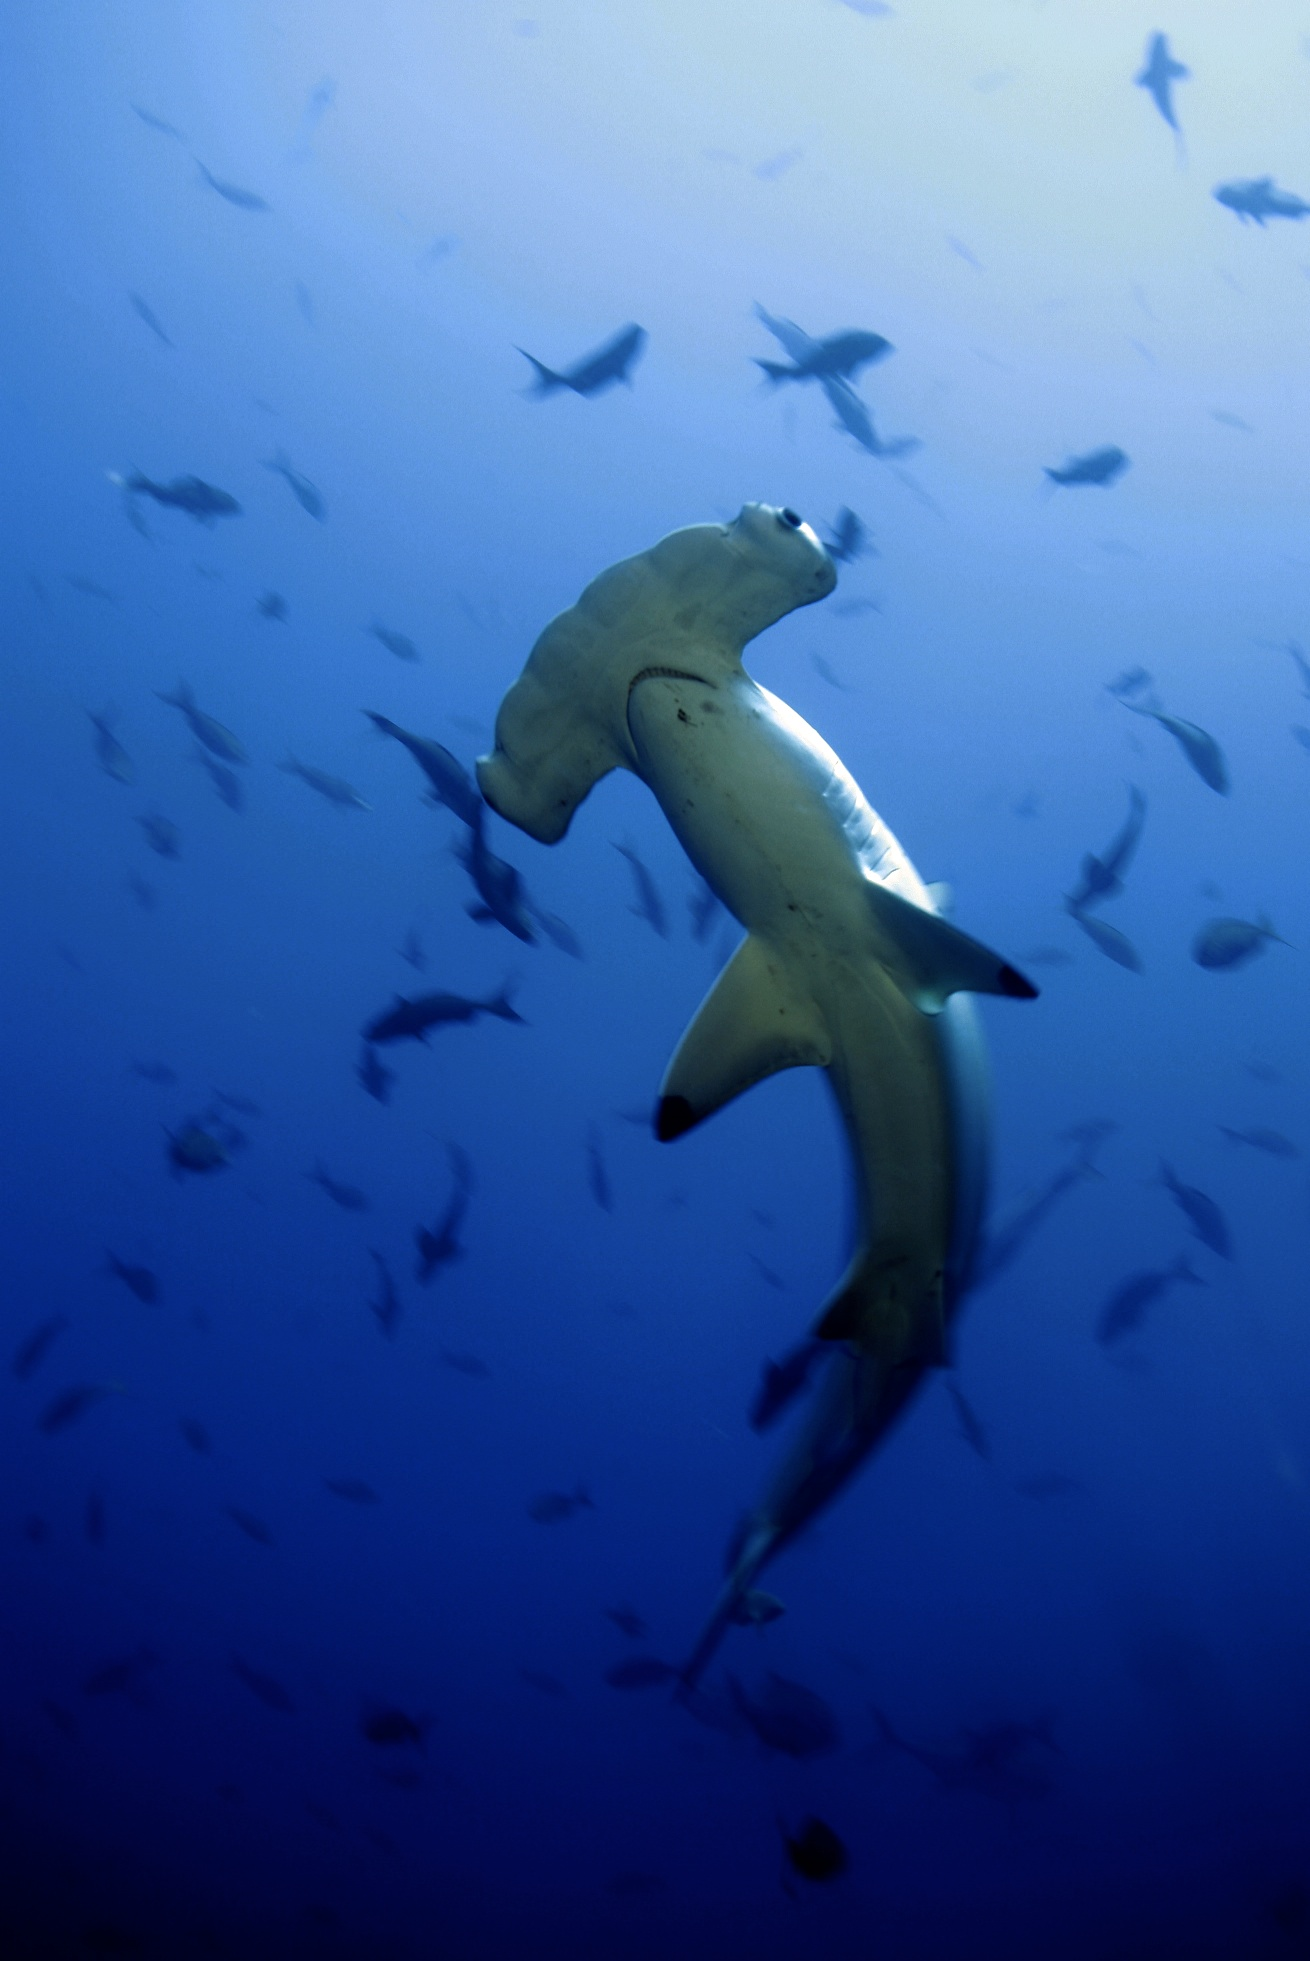 Sharks and Costa Rica | The Costa Rican Times